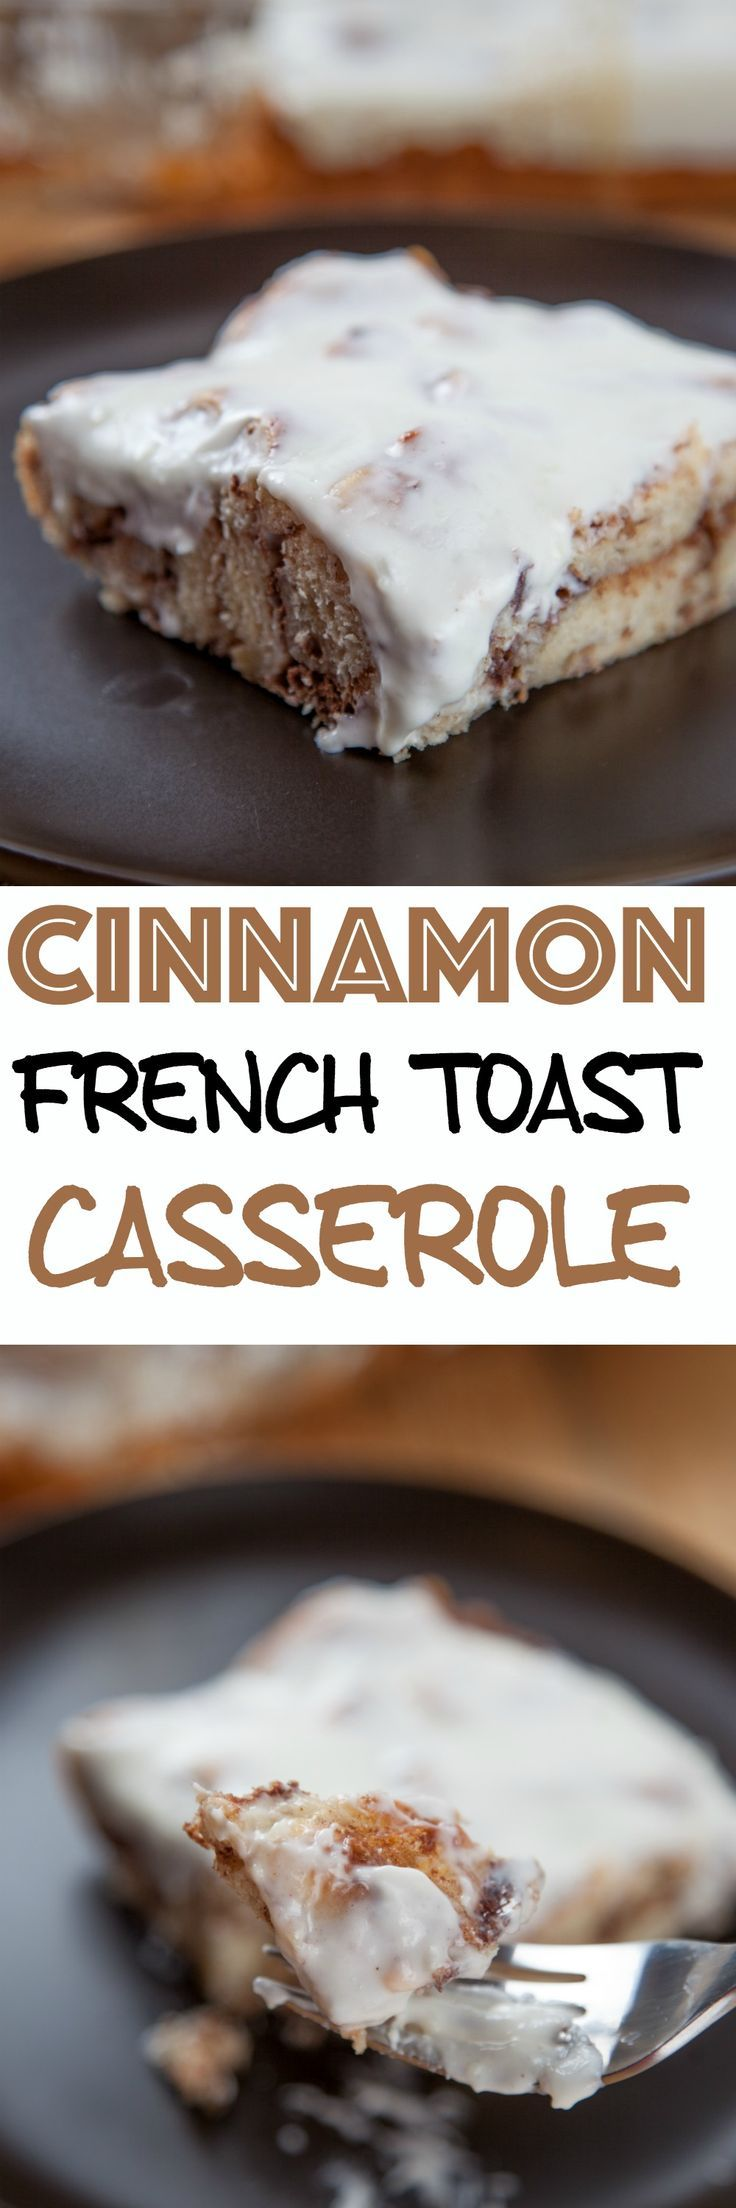 Cinnamon French Toast Casserole: Fluffy cinnamon french toast topped with a decadent cream cheese icing. Just dump and bake, easiest Christmas brunch ...